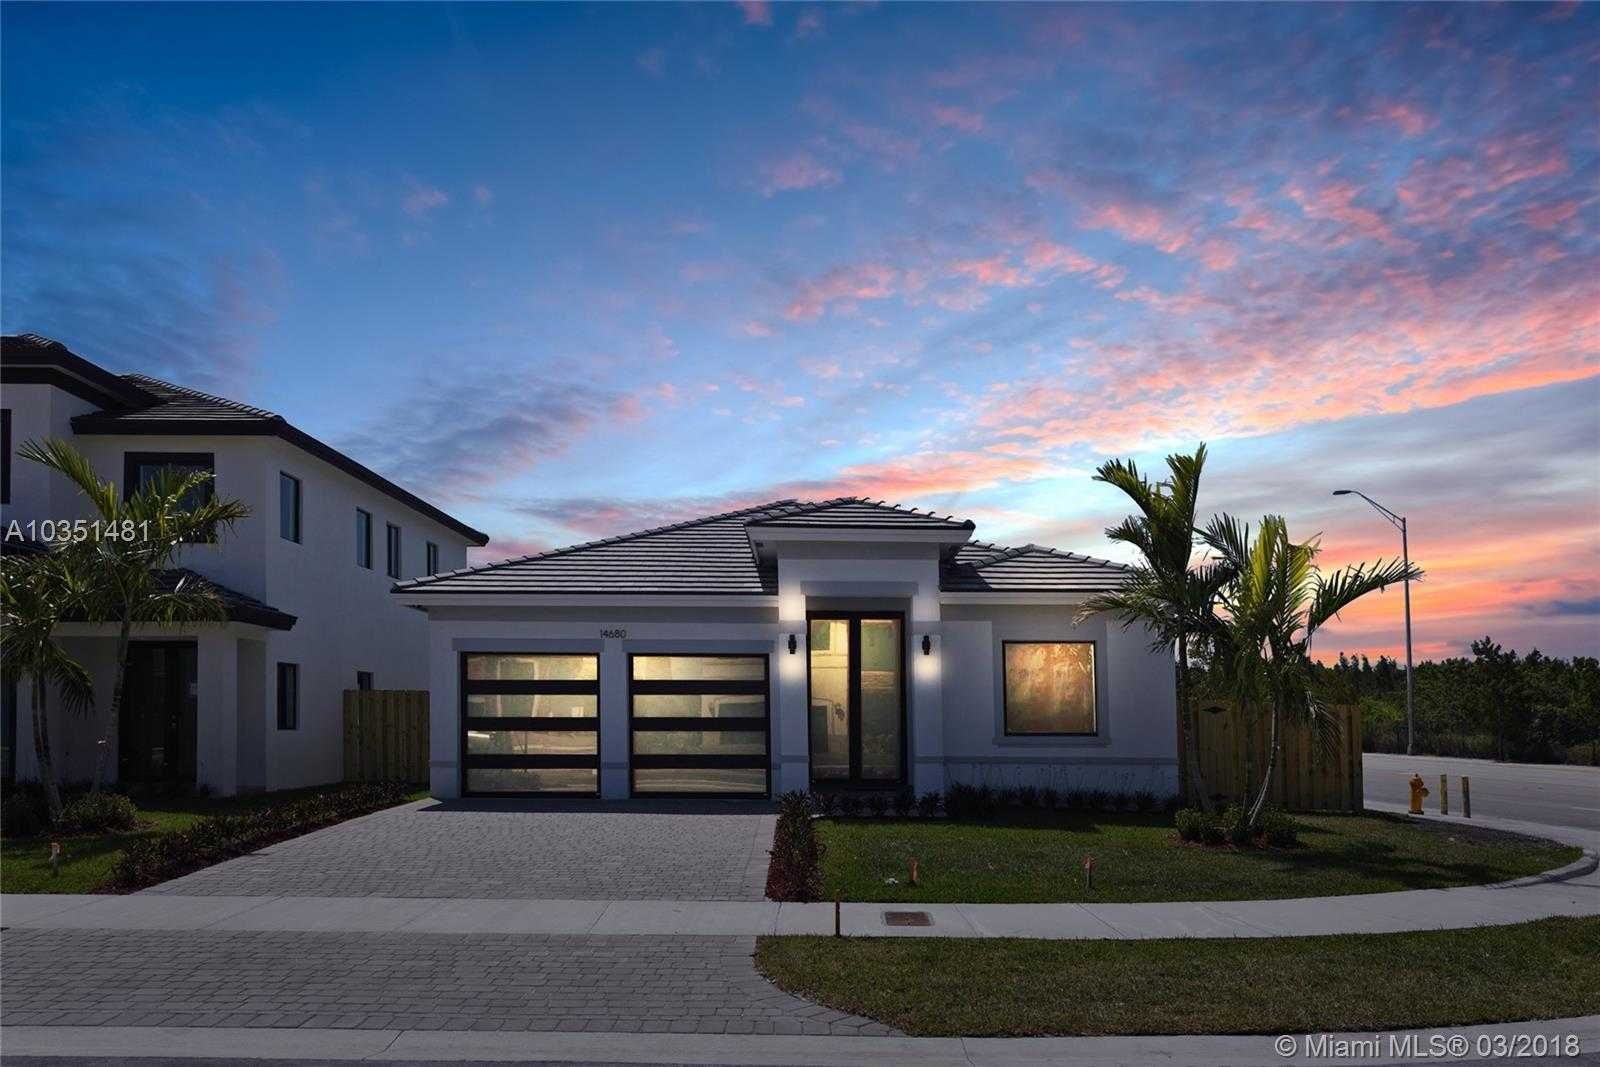 $565,000 - 4Br/3Ba -  for Sale in J G Heads Farms Sub, Unincorporated Dade County